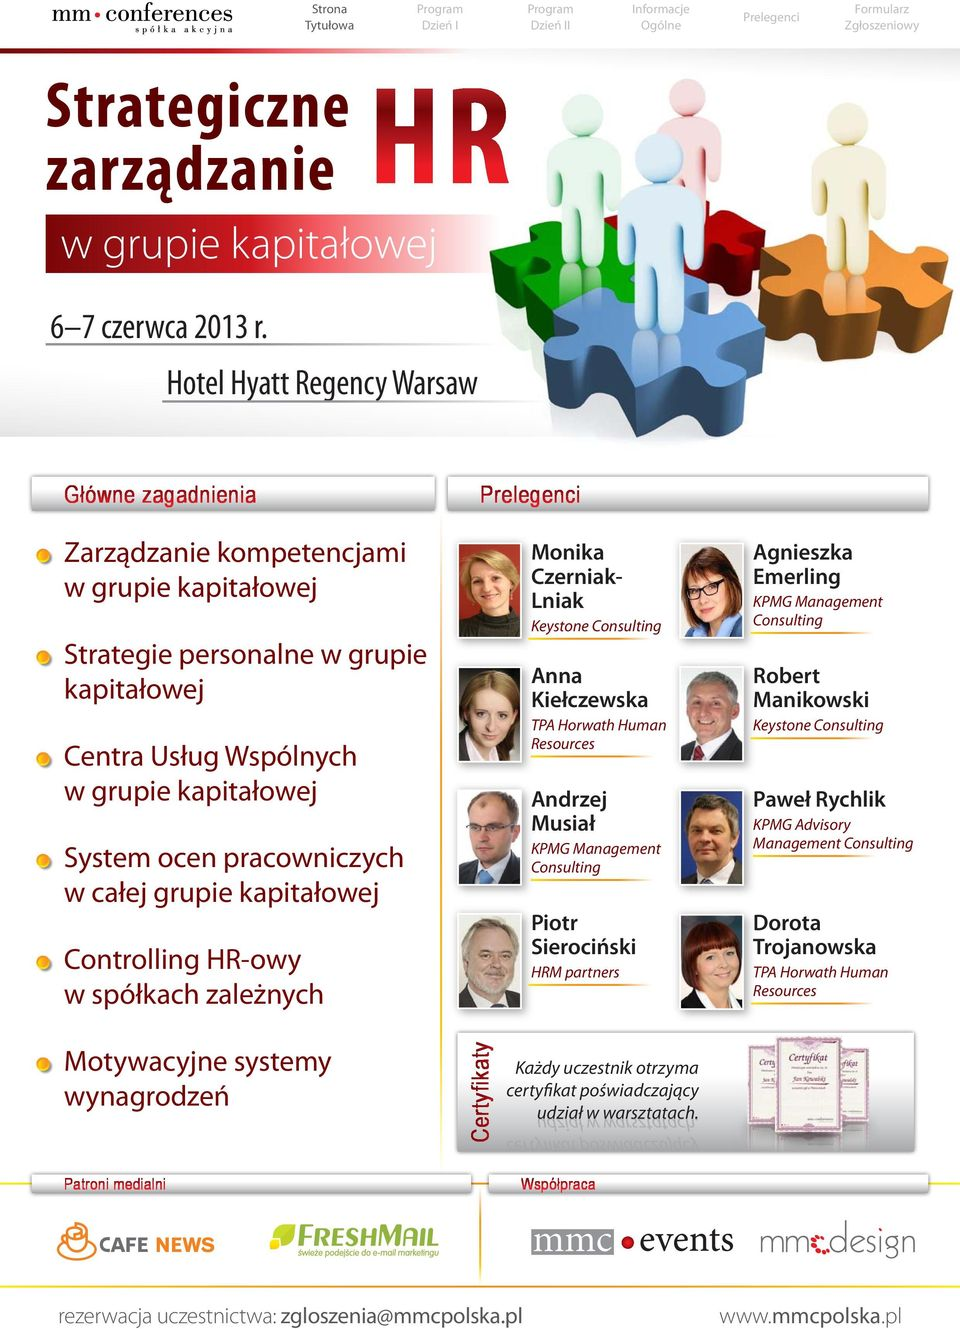 KPMG Management Consulting Piotr Sierociński M partners Agnieszka Emerling KPMG Management Consulting Robert Manikowski Keystone Consulting Paweł Rychlik KPMG Advisory Management Consulting